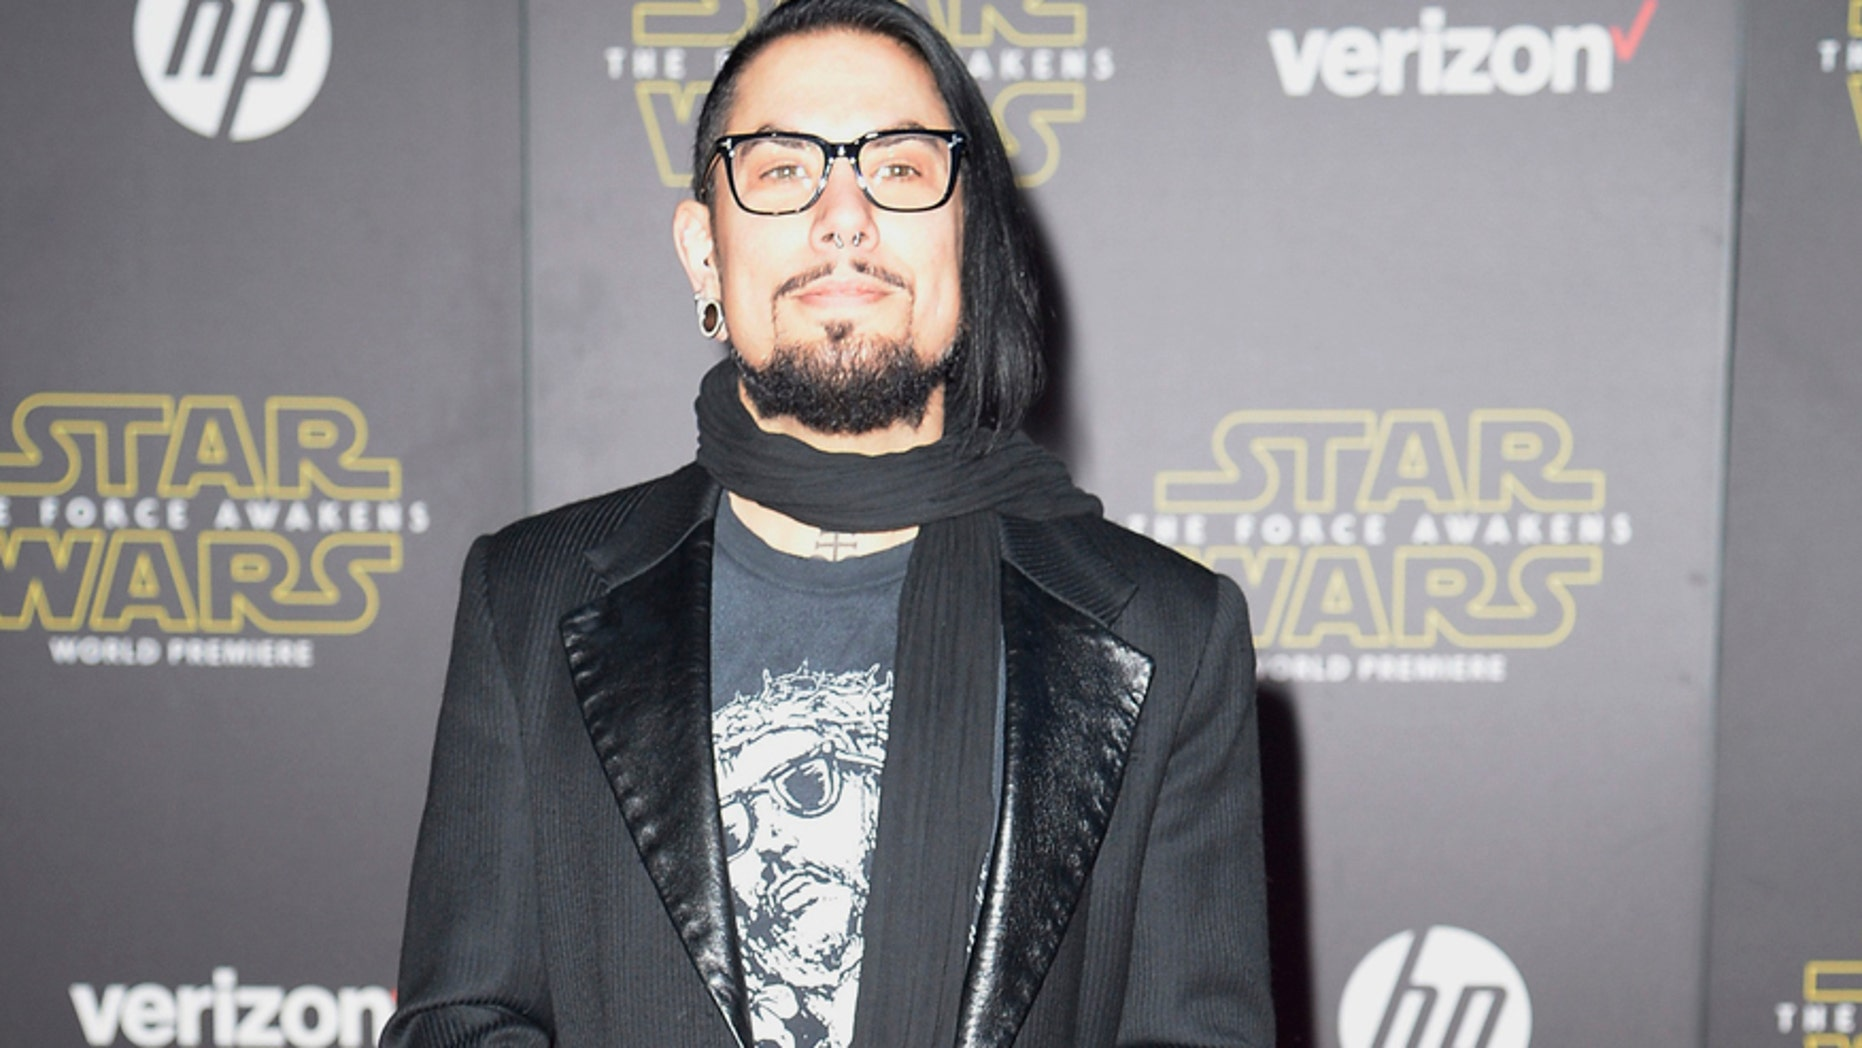 """Musician Dave Navarro arrives at the premiere of """"Star Wars: The Force Awakens"""" in Hollywood, California December 14, 2015. REUTERS/Kevork Djansezian - RTX1YPH5"""